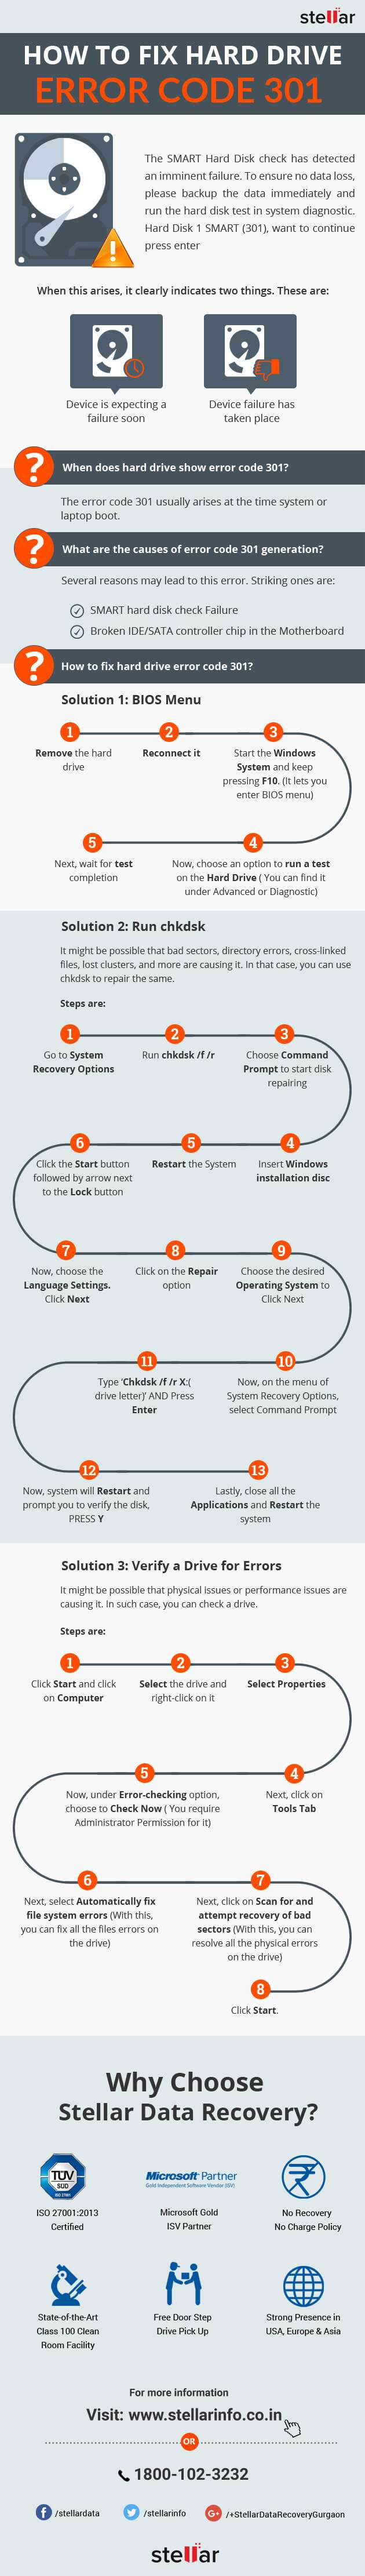 How to Fix Hard Drive Error Code 301 infographic